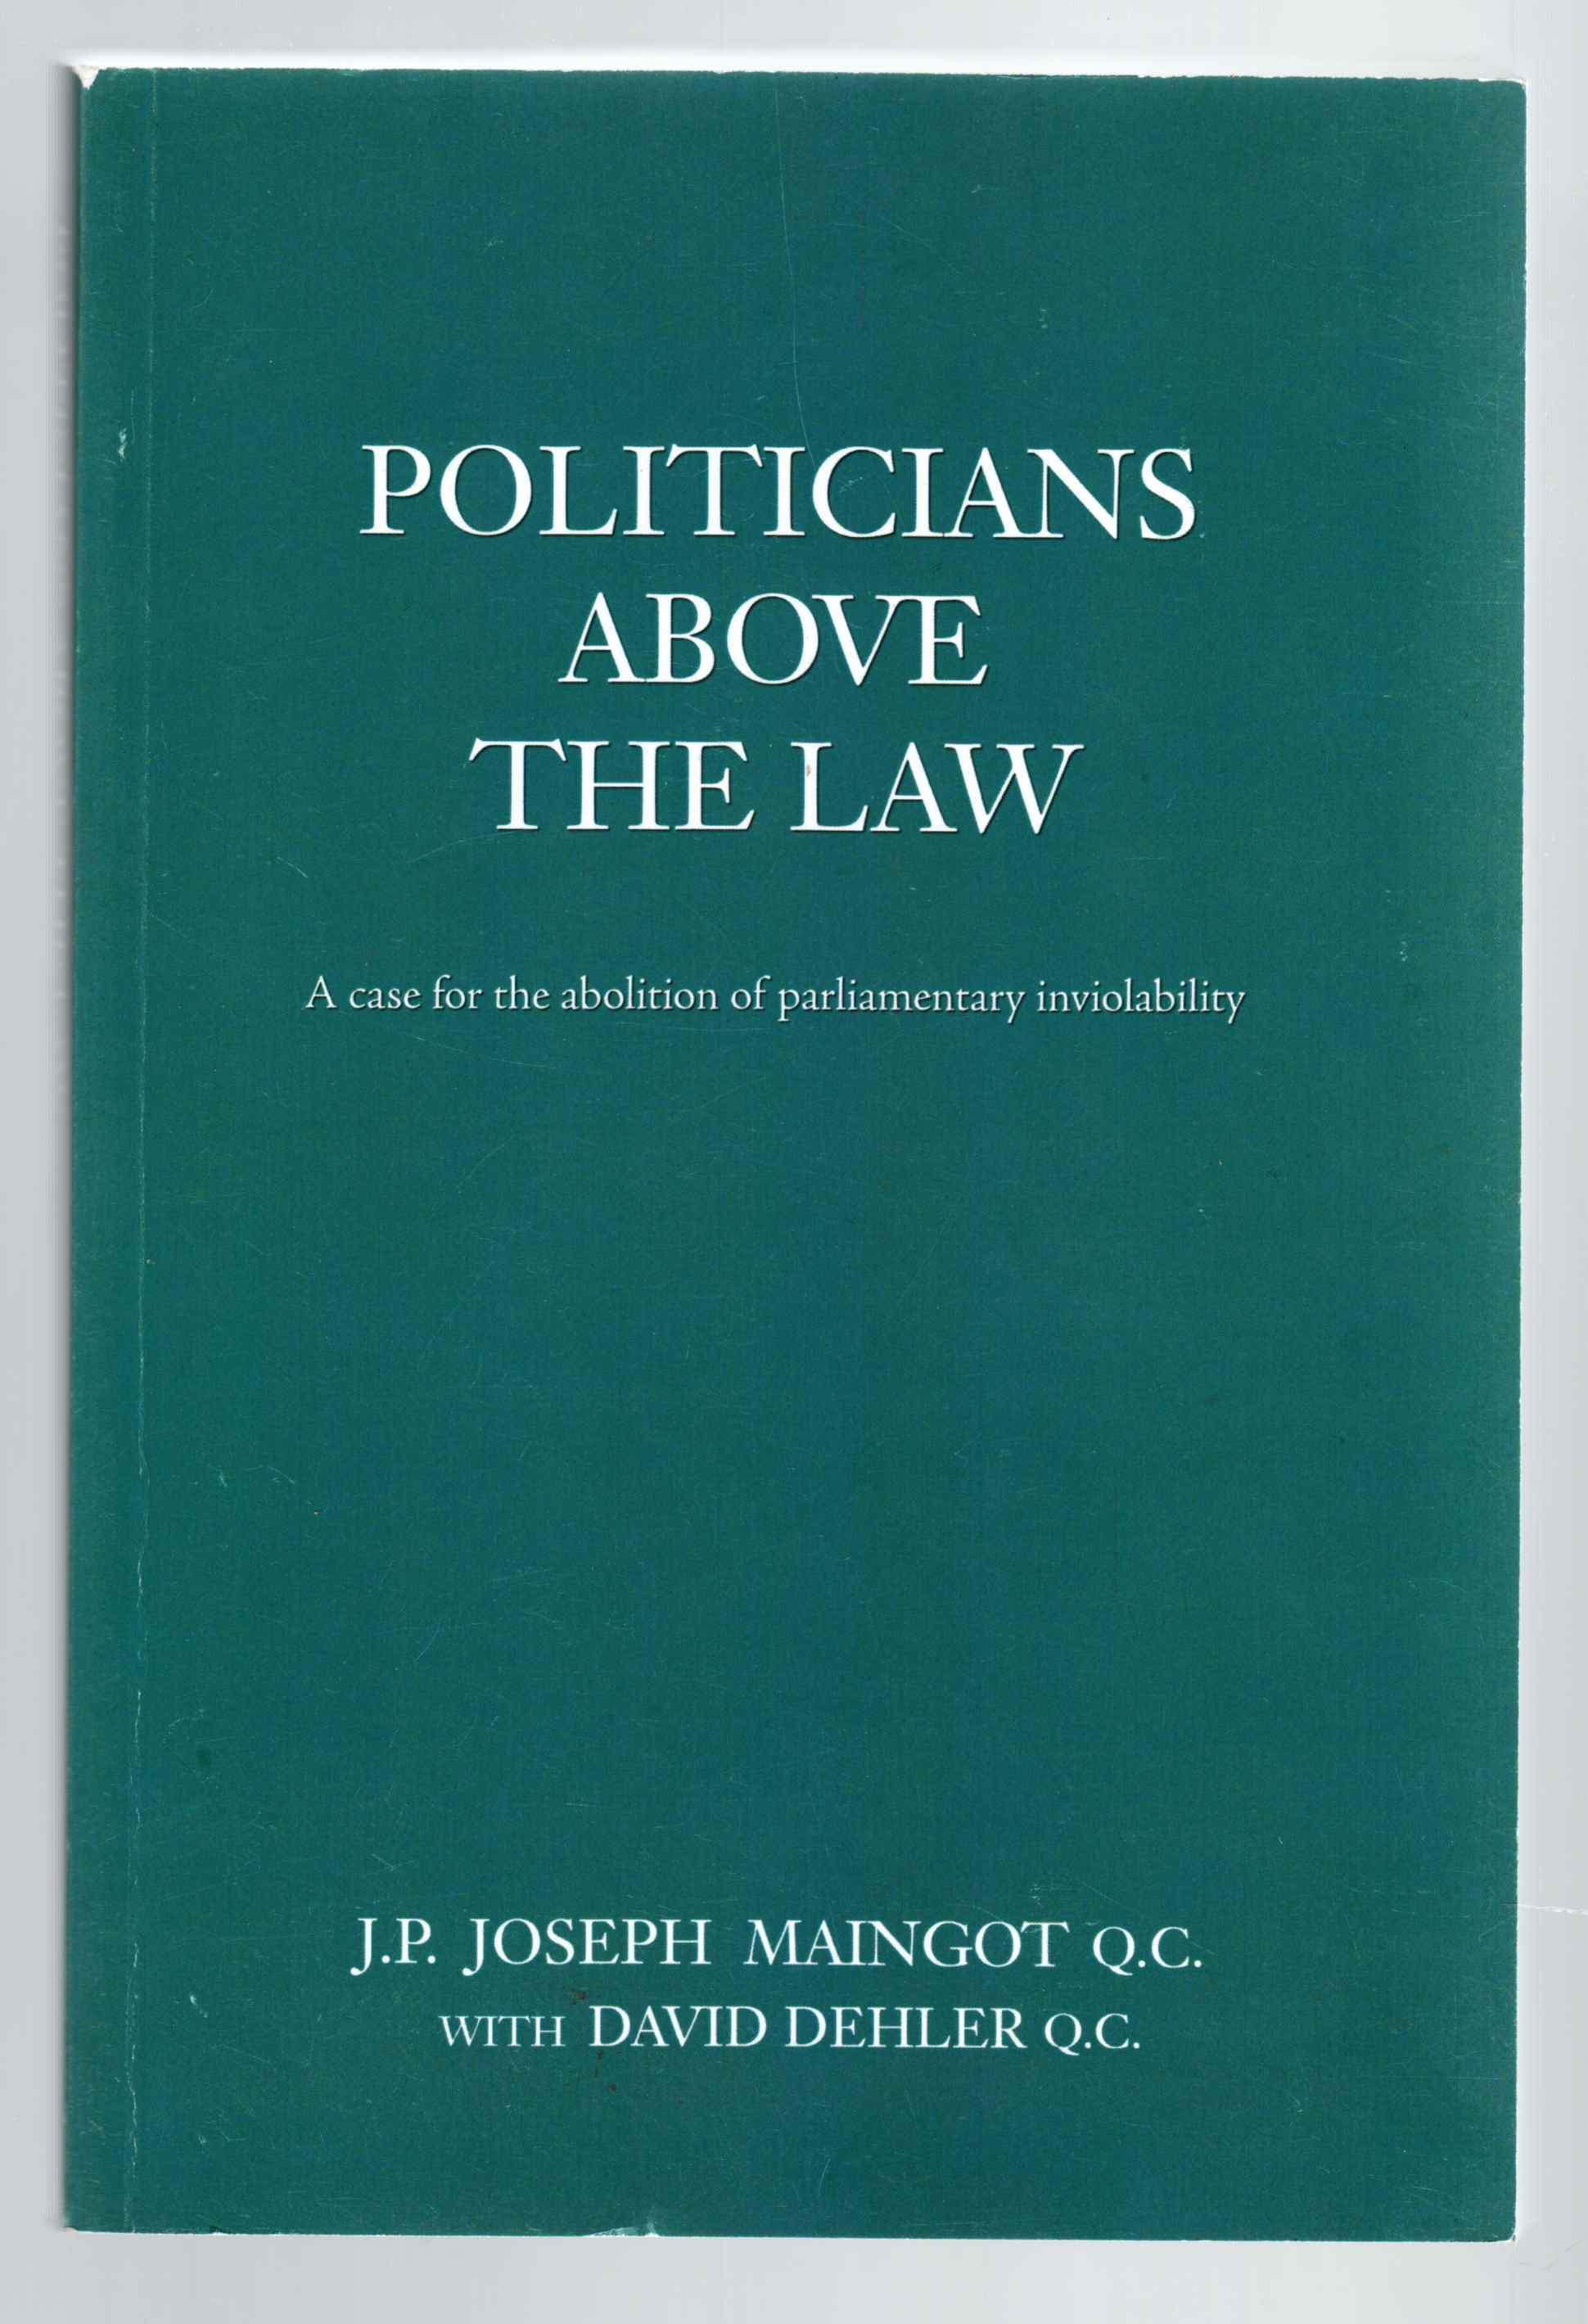 Image for Politicians Above the Law A Case for the Abolition of Parliamentary Inviolability